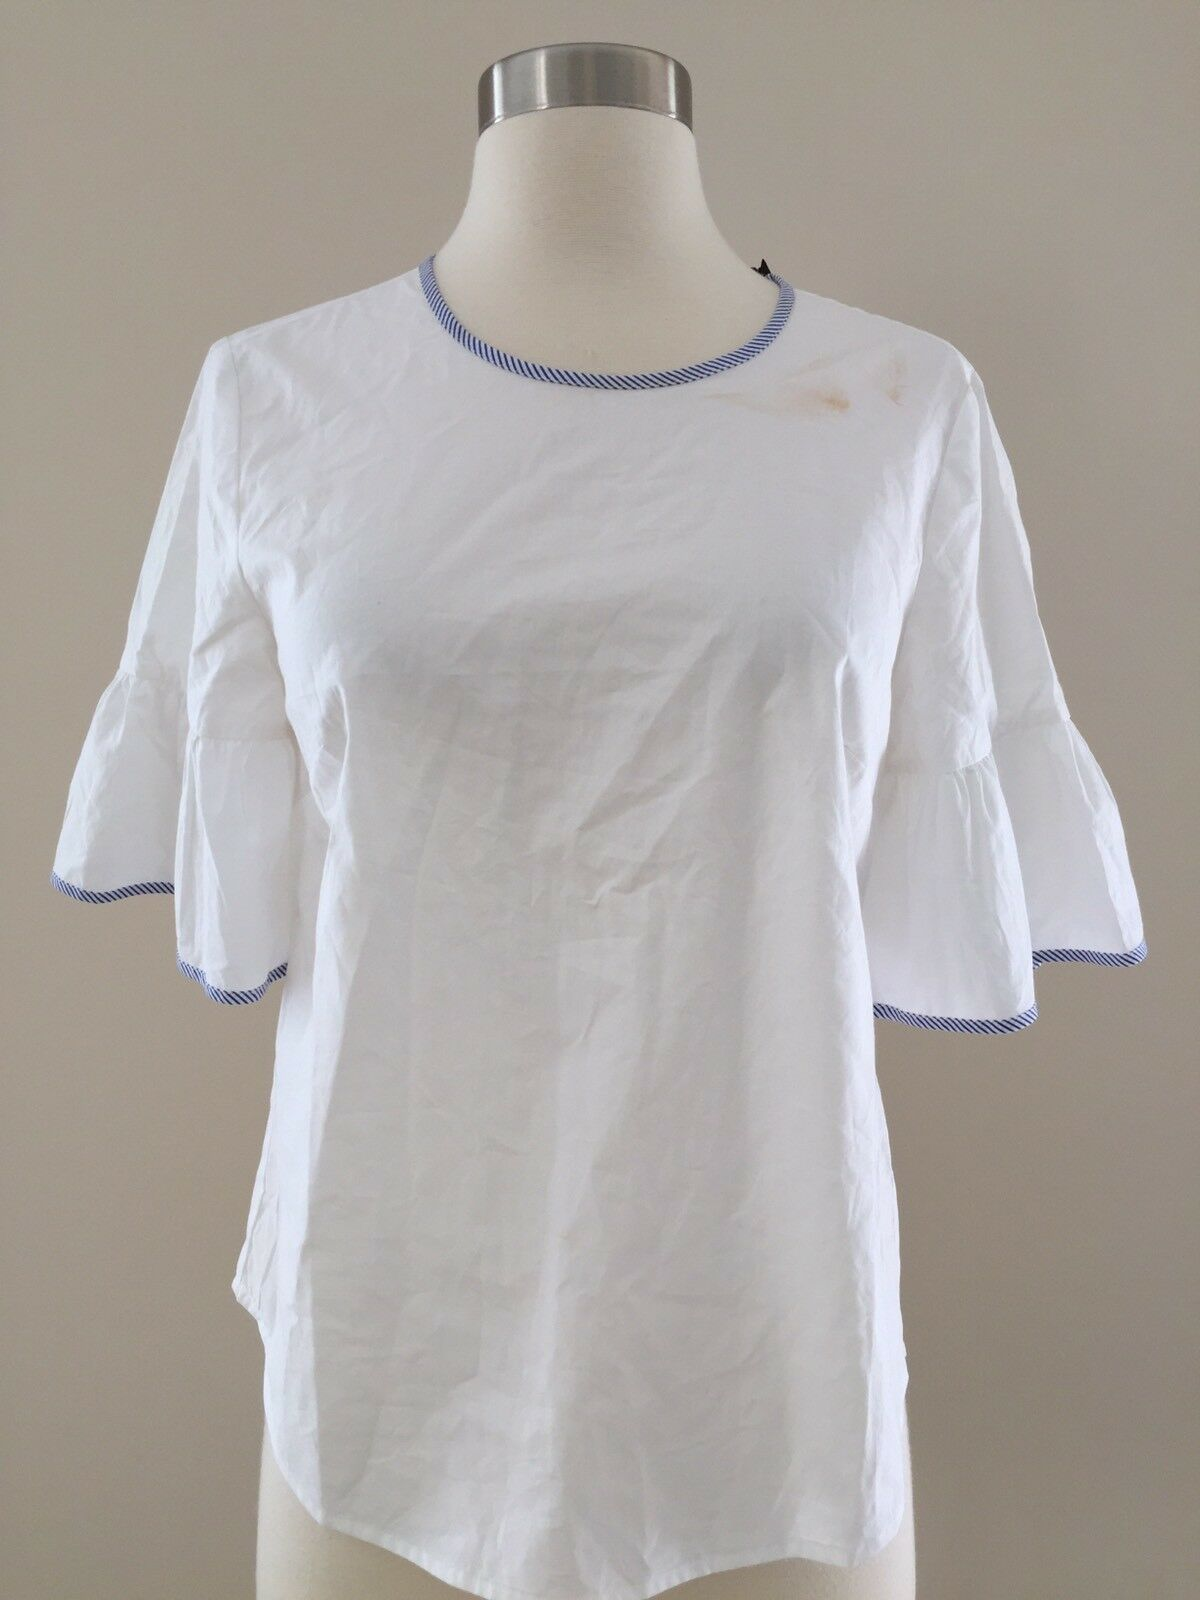 NWT JCREW G2826 Tipped button-back bell-sleeve top shirt 0 SOLD-OUT